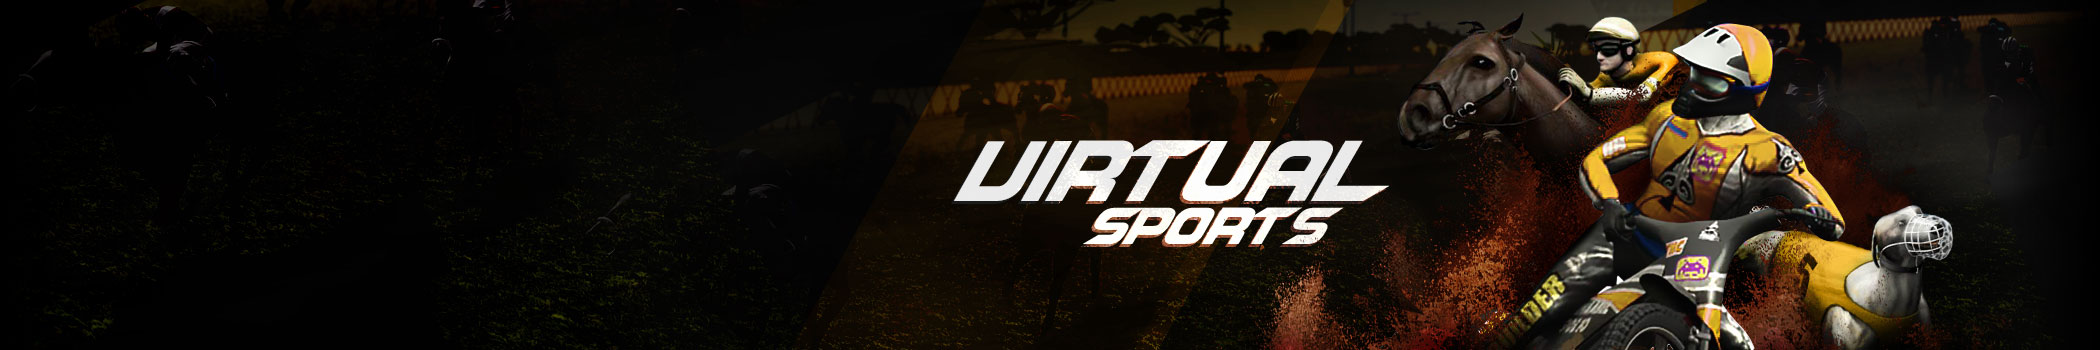 Discover Virtual Sports!